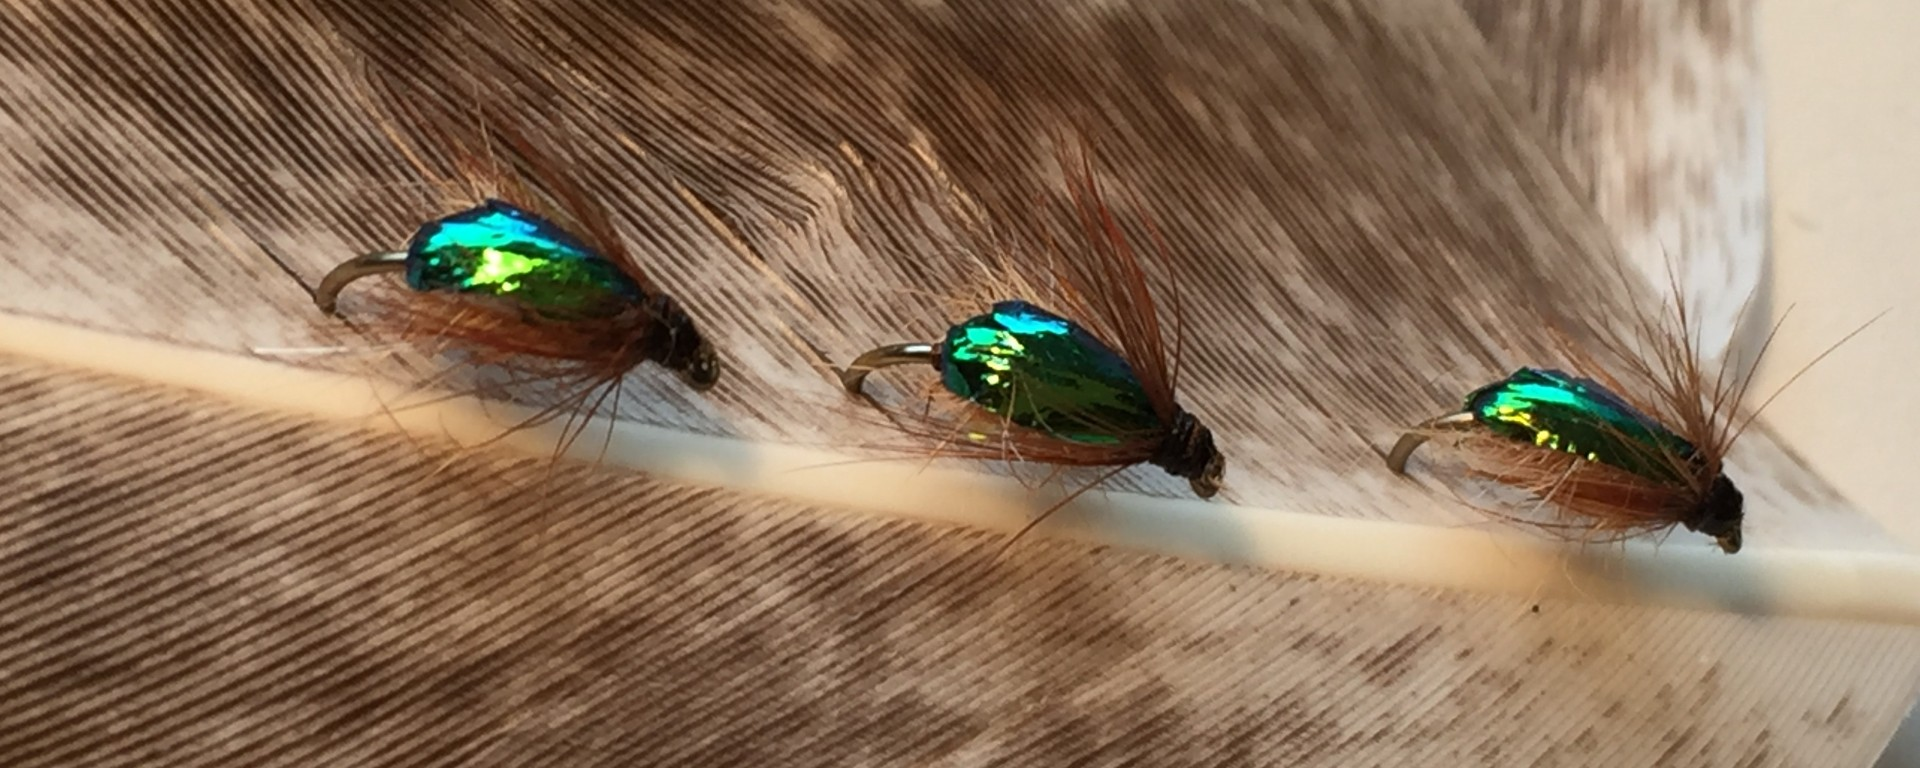 Fly tying on a tight budget active angling new zealand for Fly fishing tying